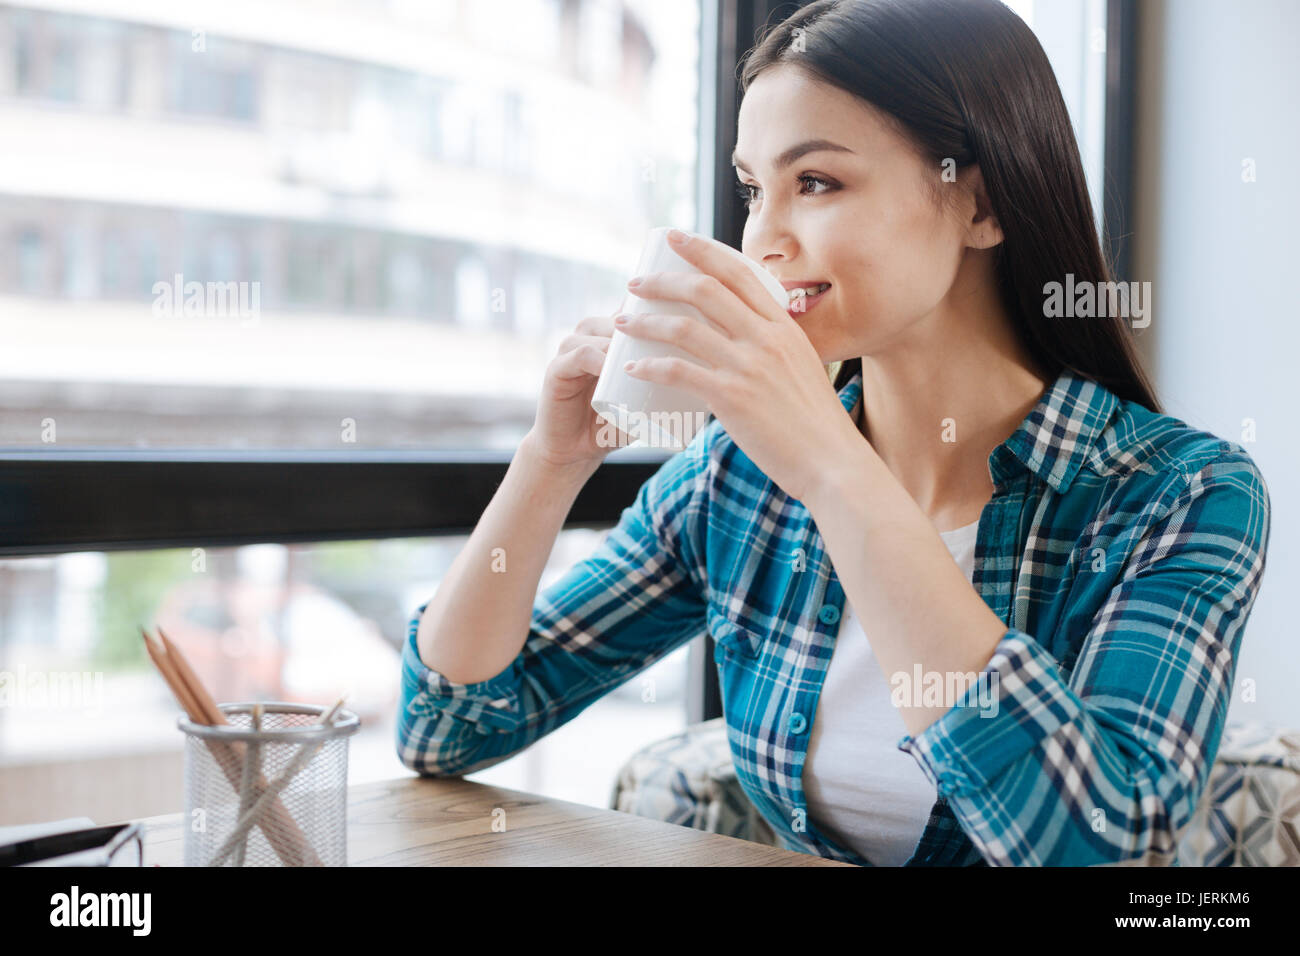 Dreamy inspired girl looking out of the window - Stock Image